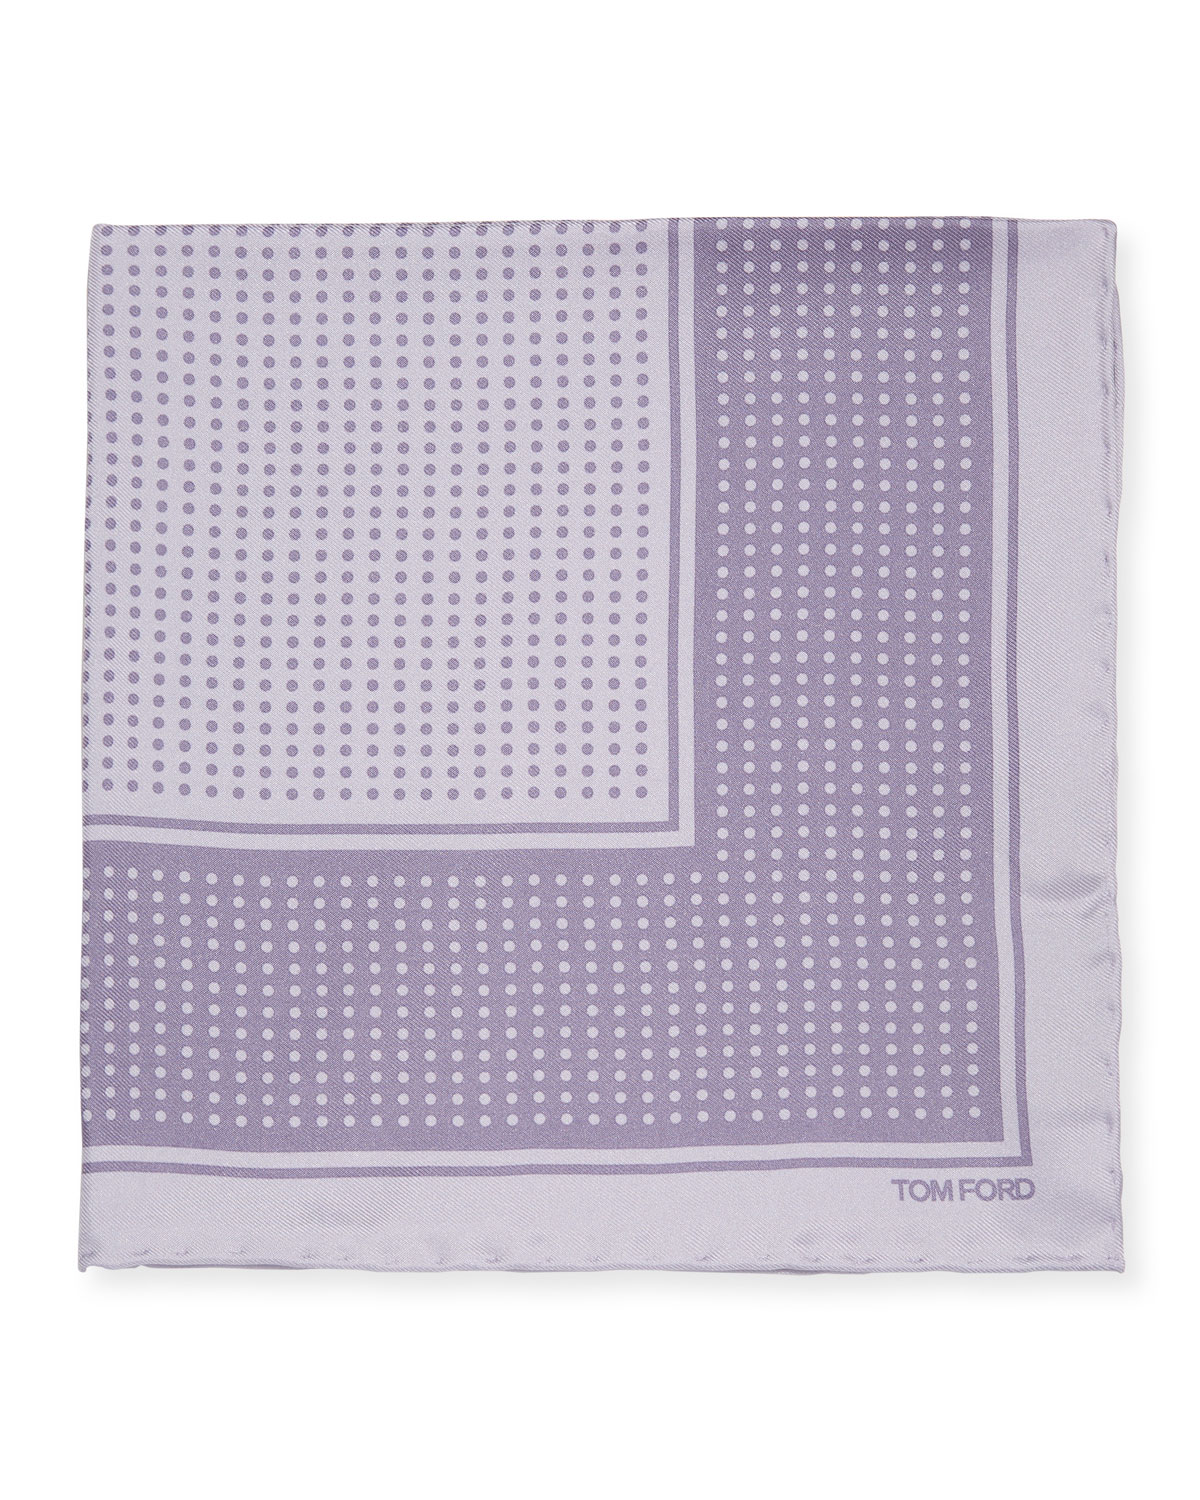 TOM FORD Polka Dot Silk Pocket Square